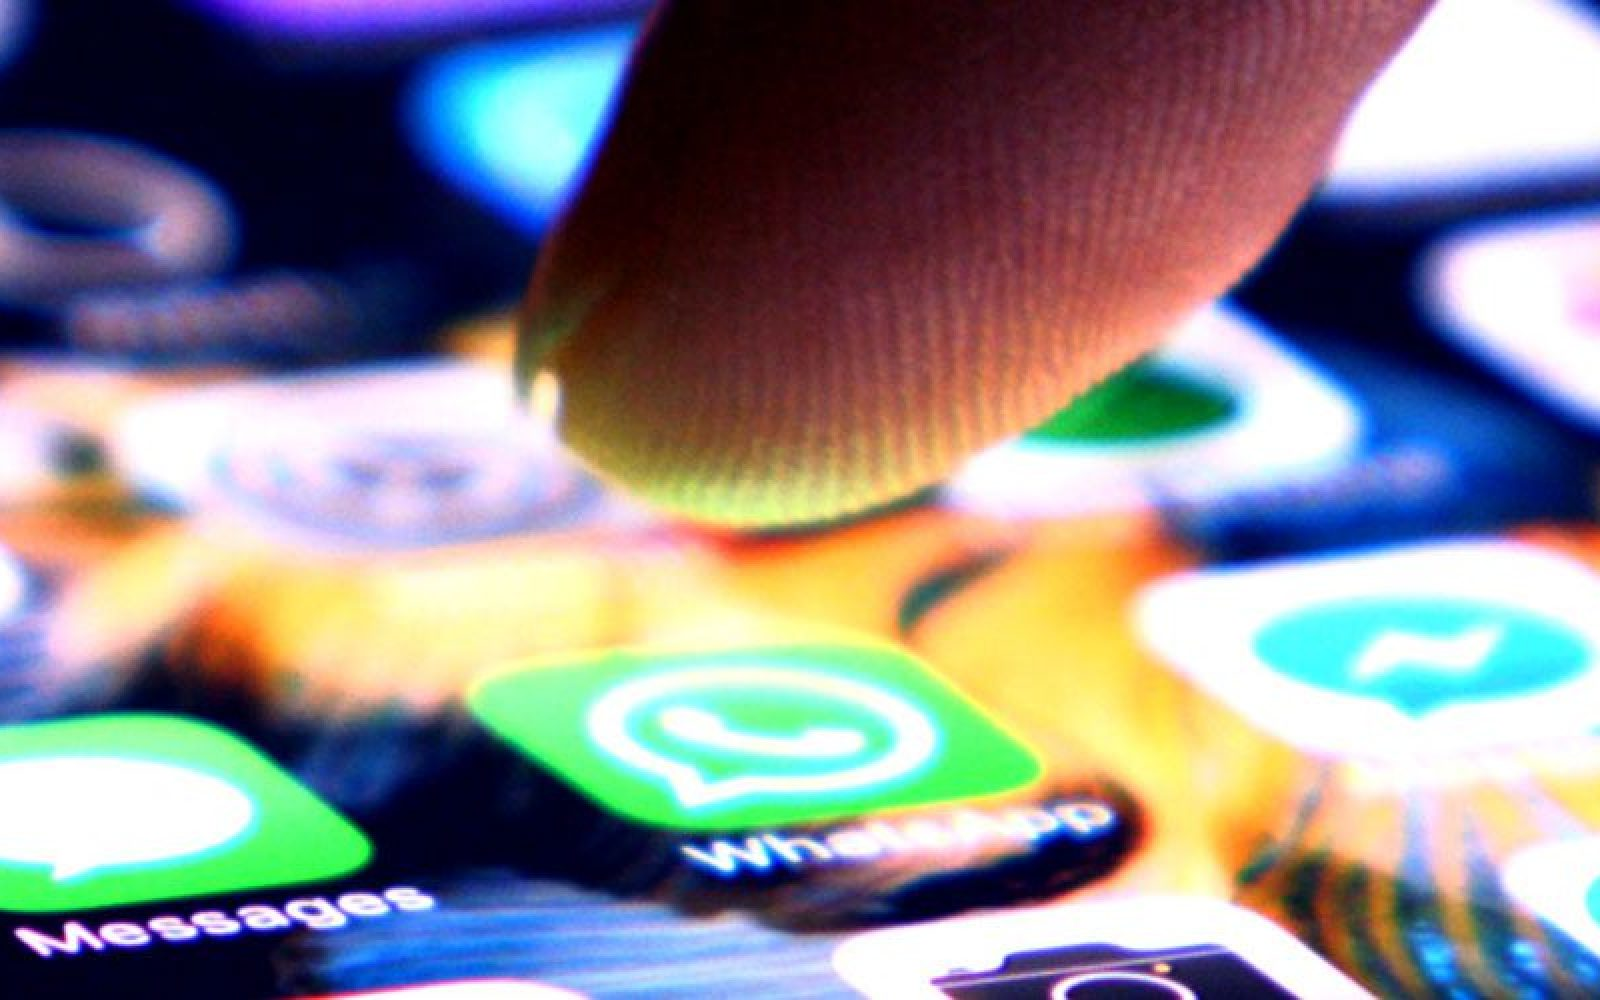 WhatsApp launches two-step verification for all users to improve